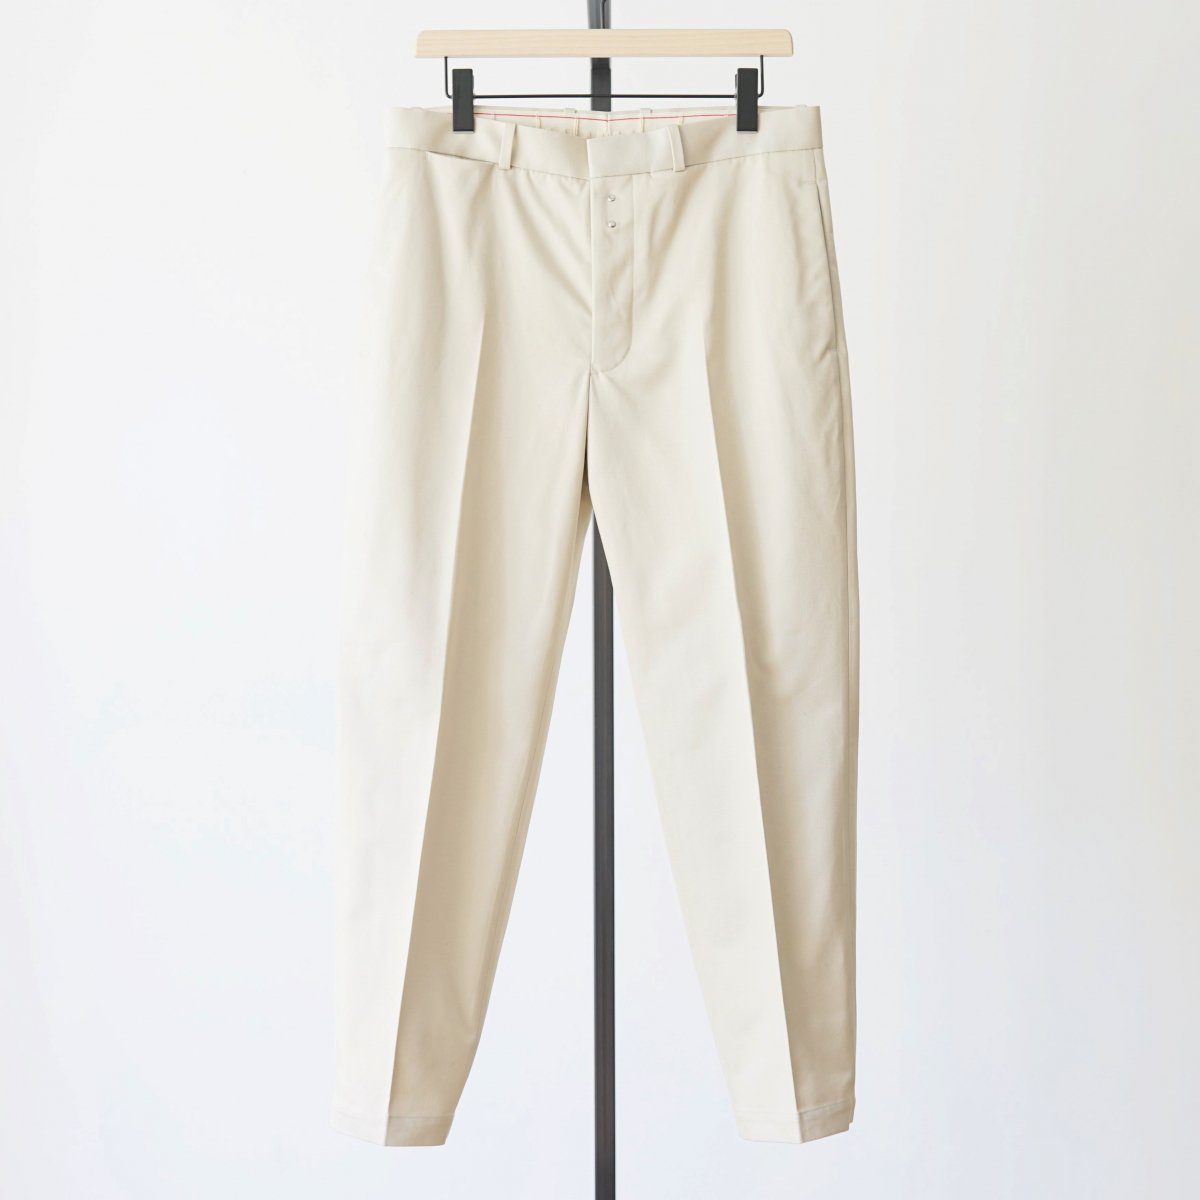 【Scye】SAN JOAQUIN COTTON LOOSE FIT TAPERED TROUSERS - OYSTER BEIGE